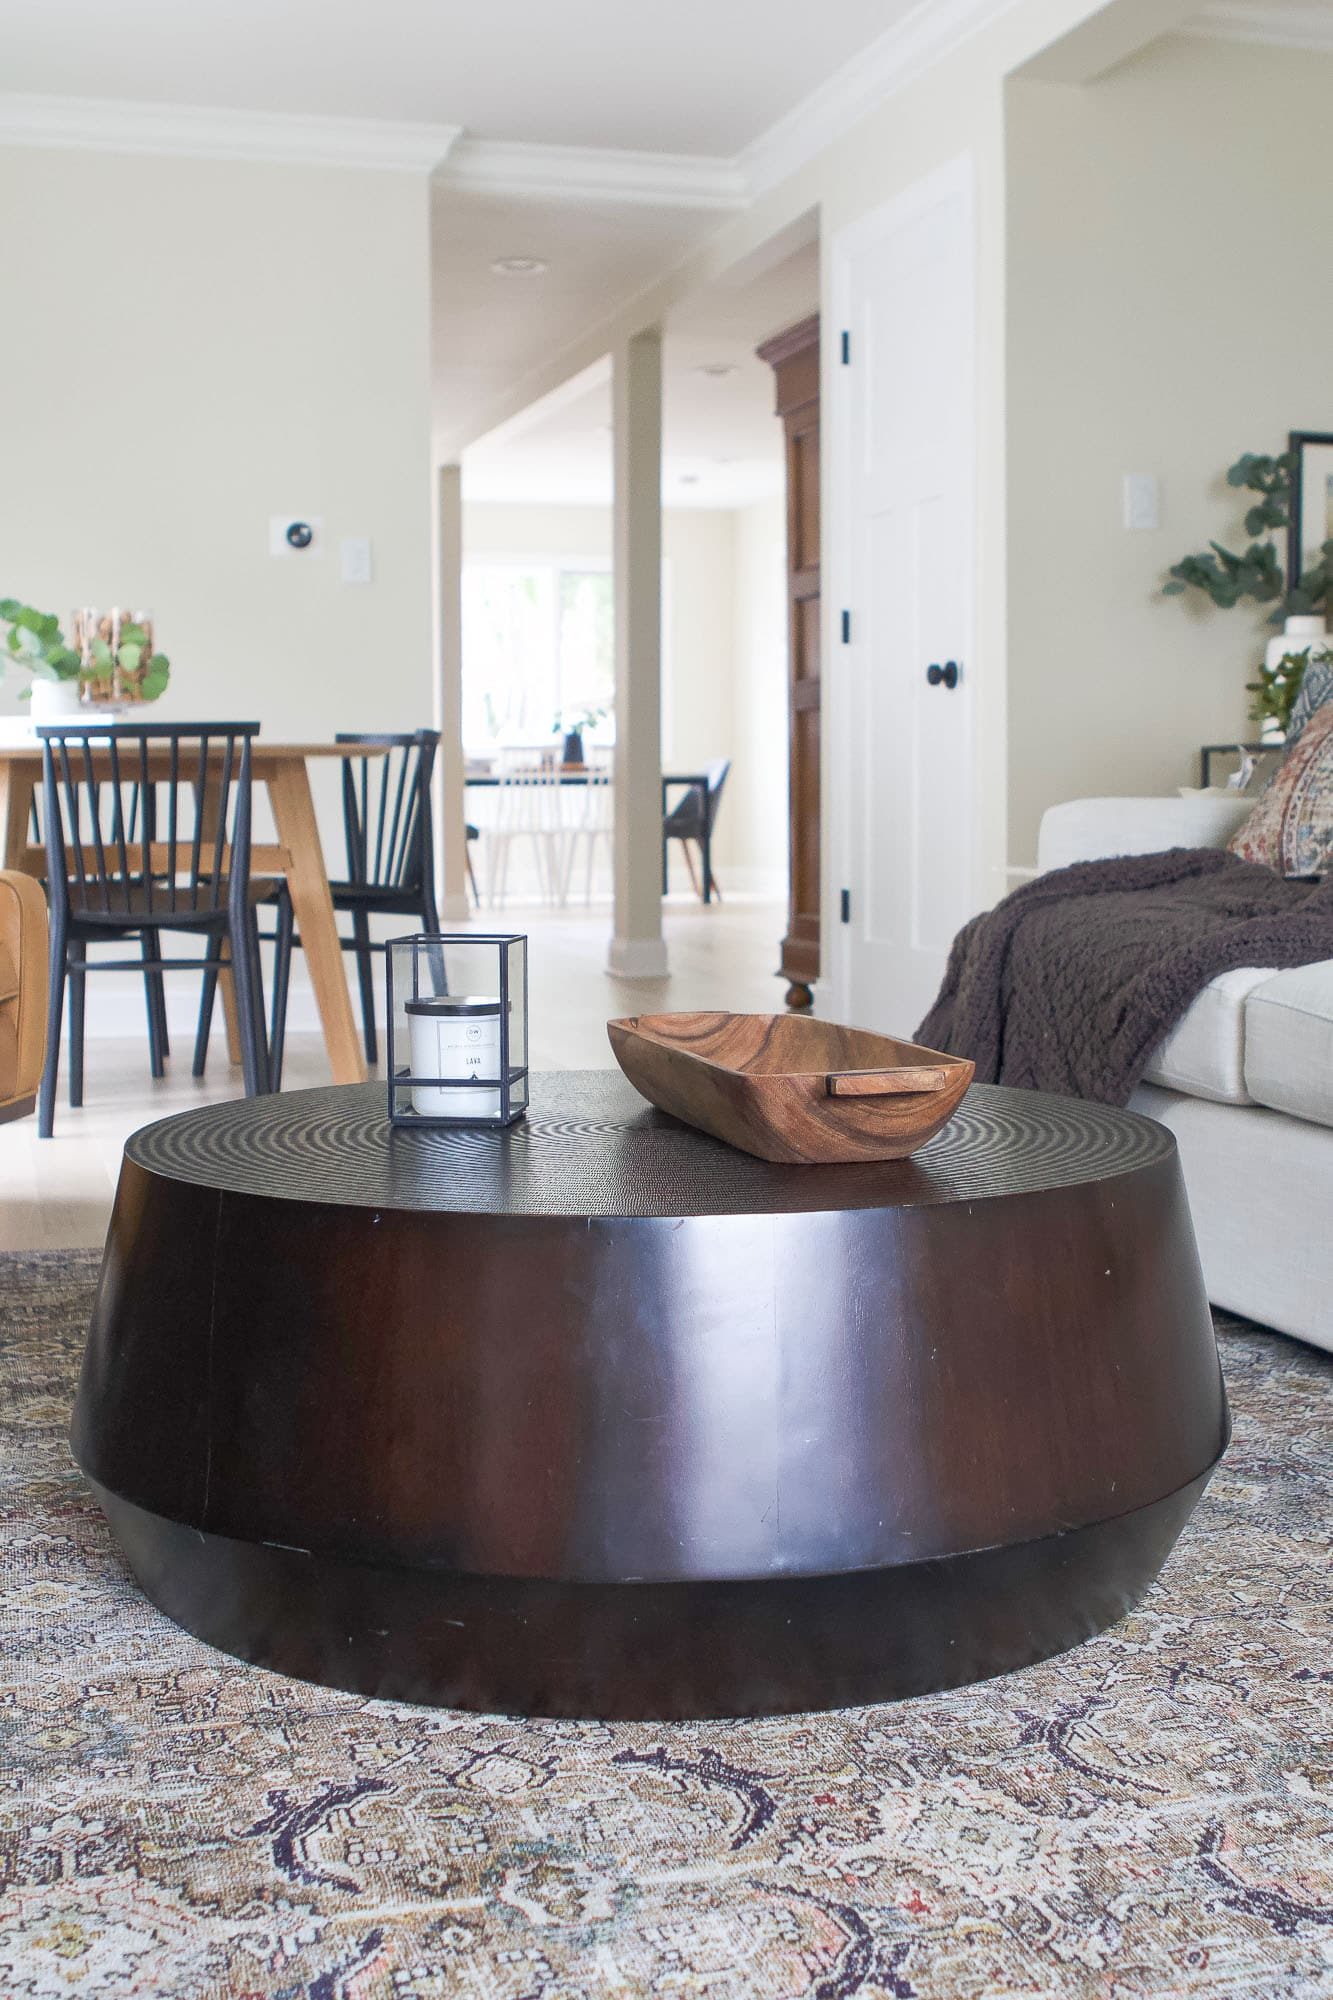 Our round coffee table from Crate and Barrel